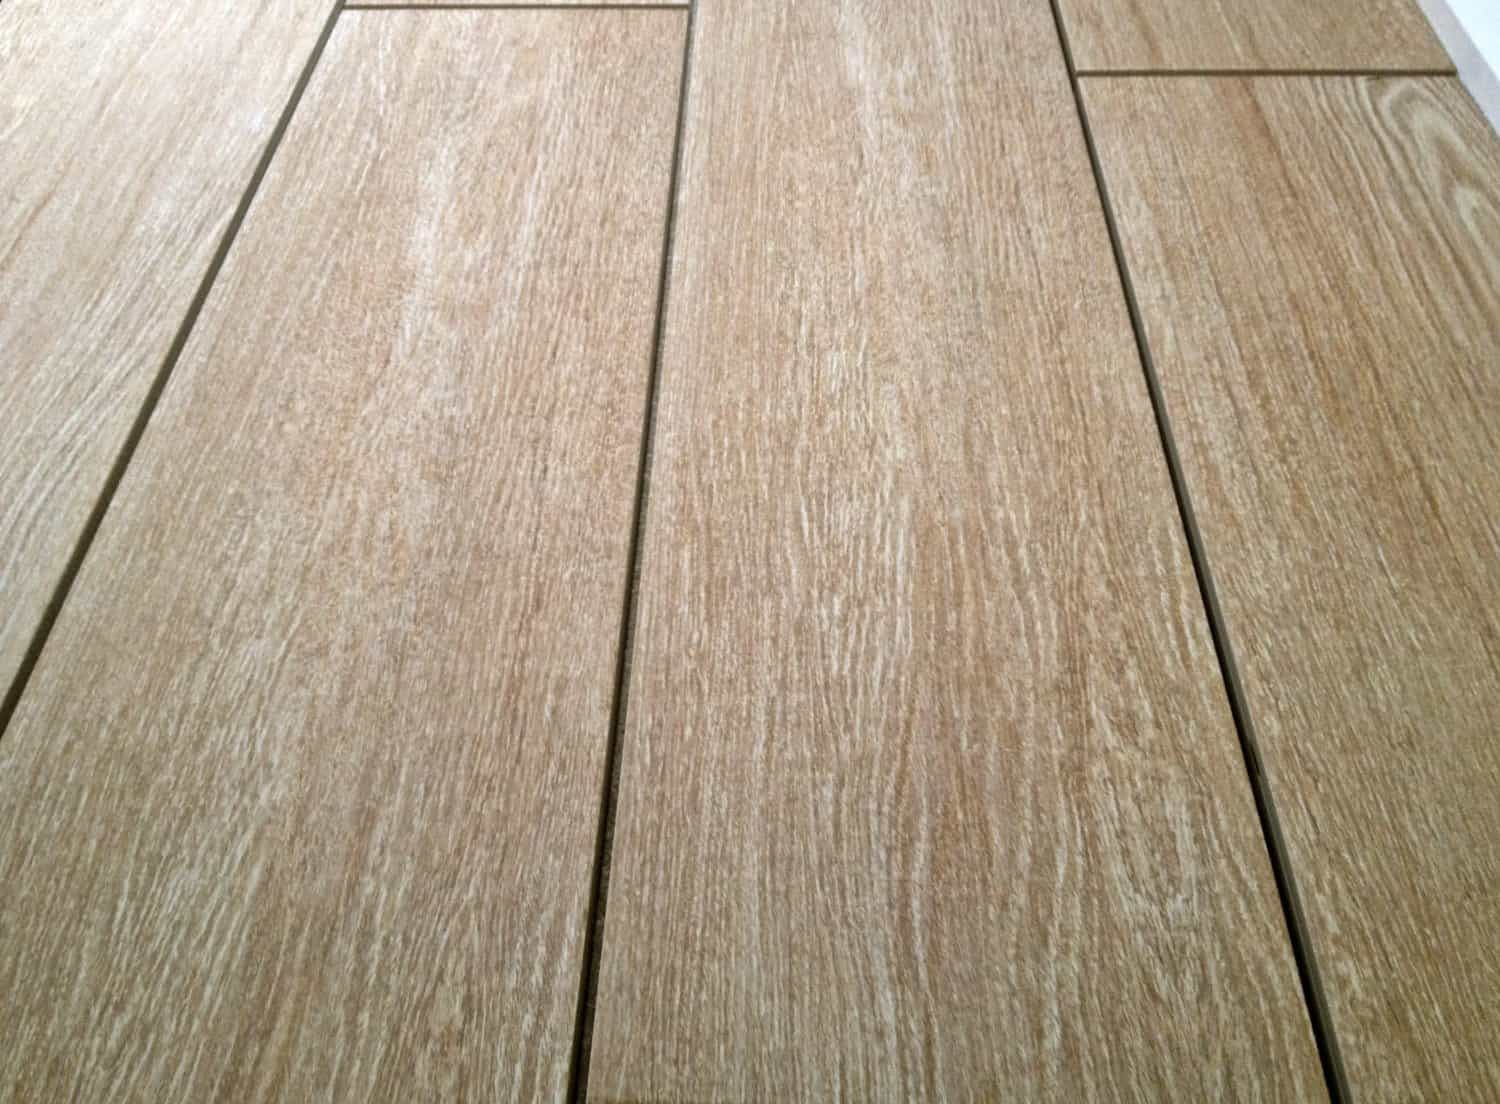 Laying A Laminate Wood Floor Images